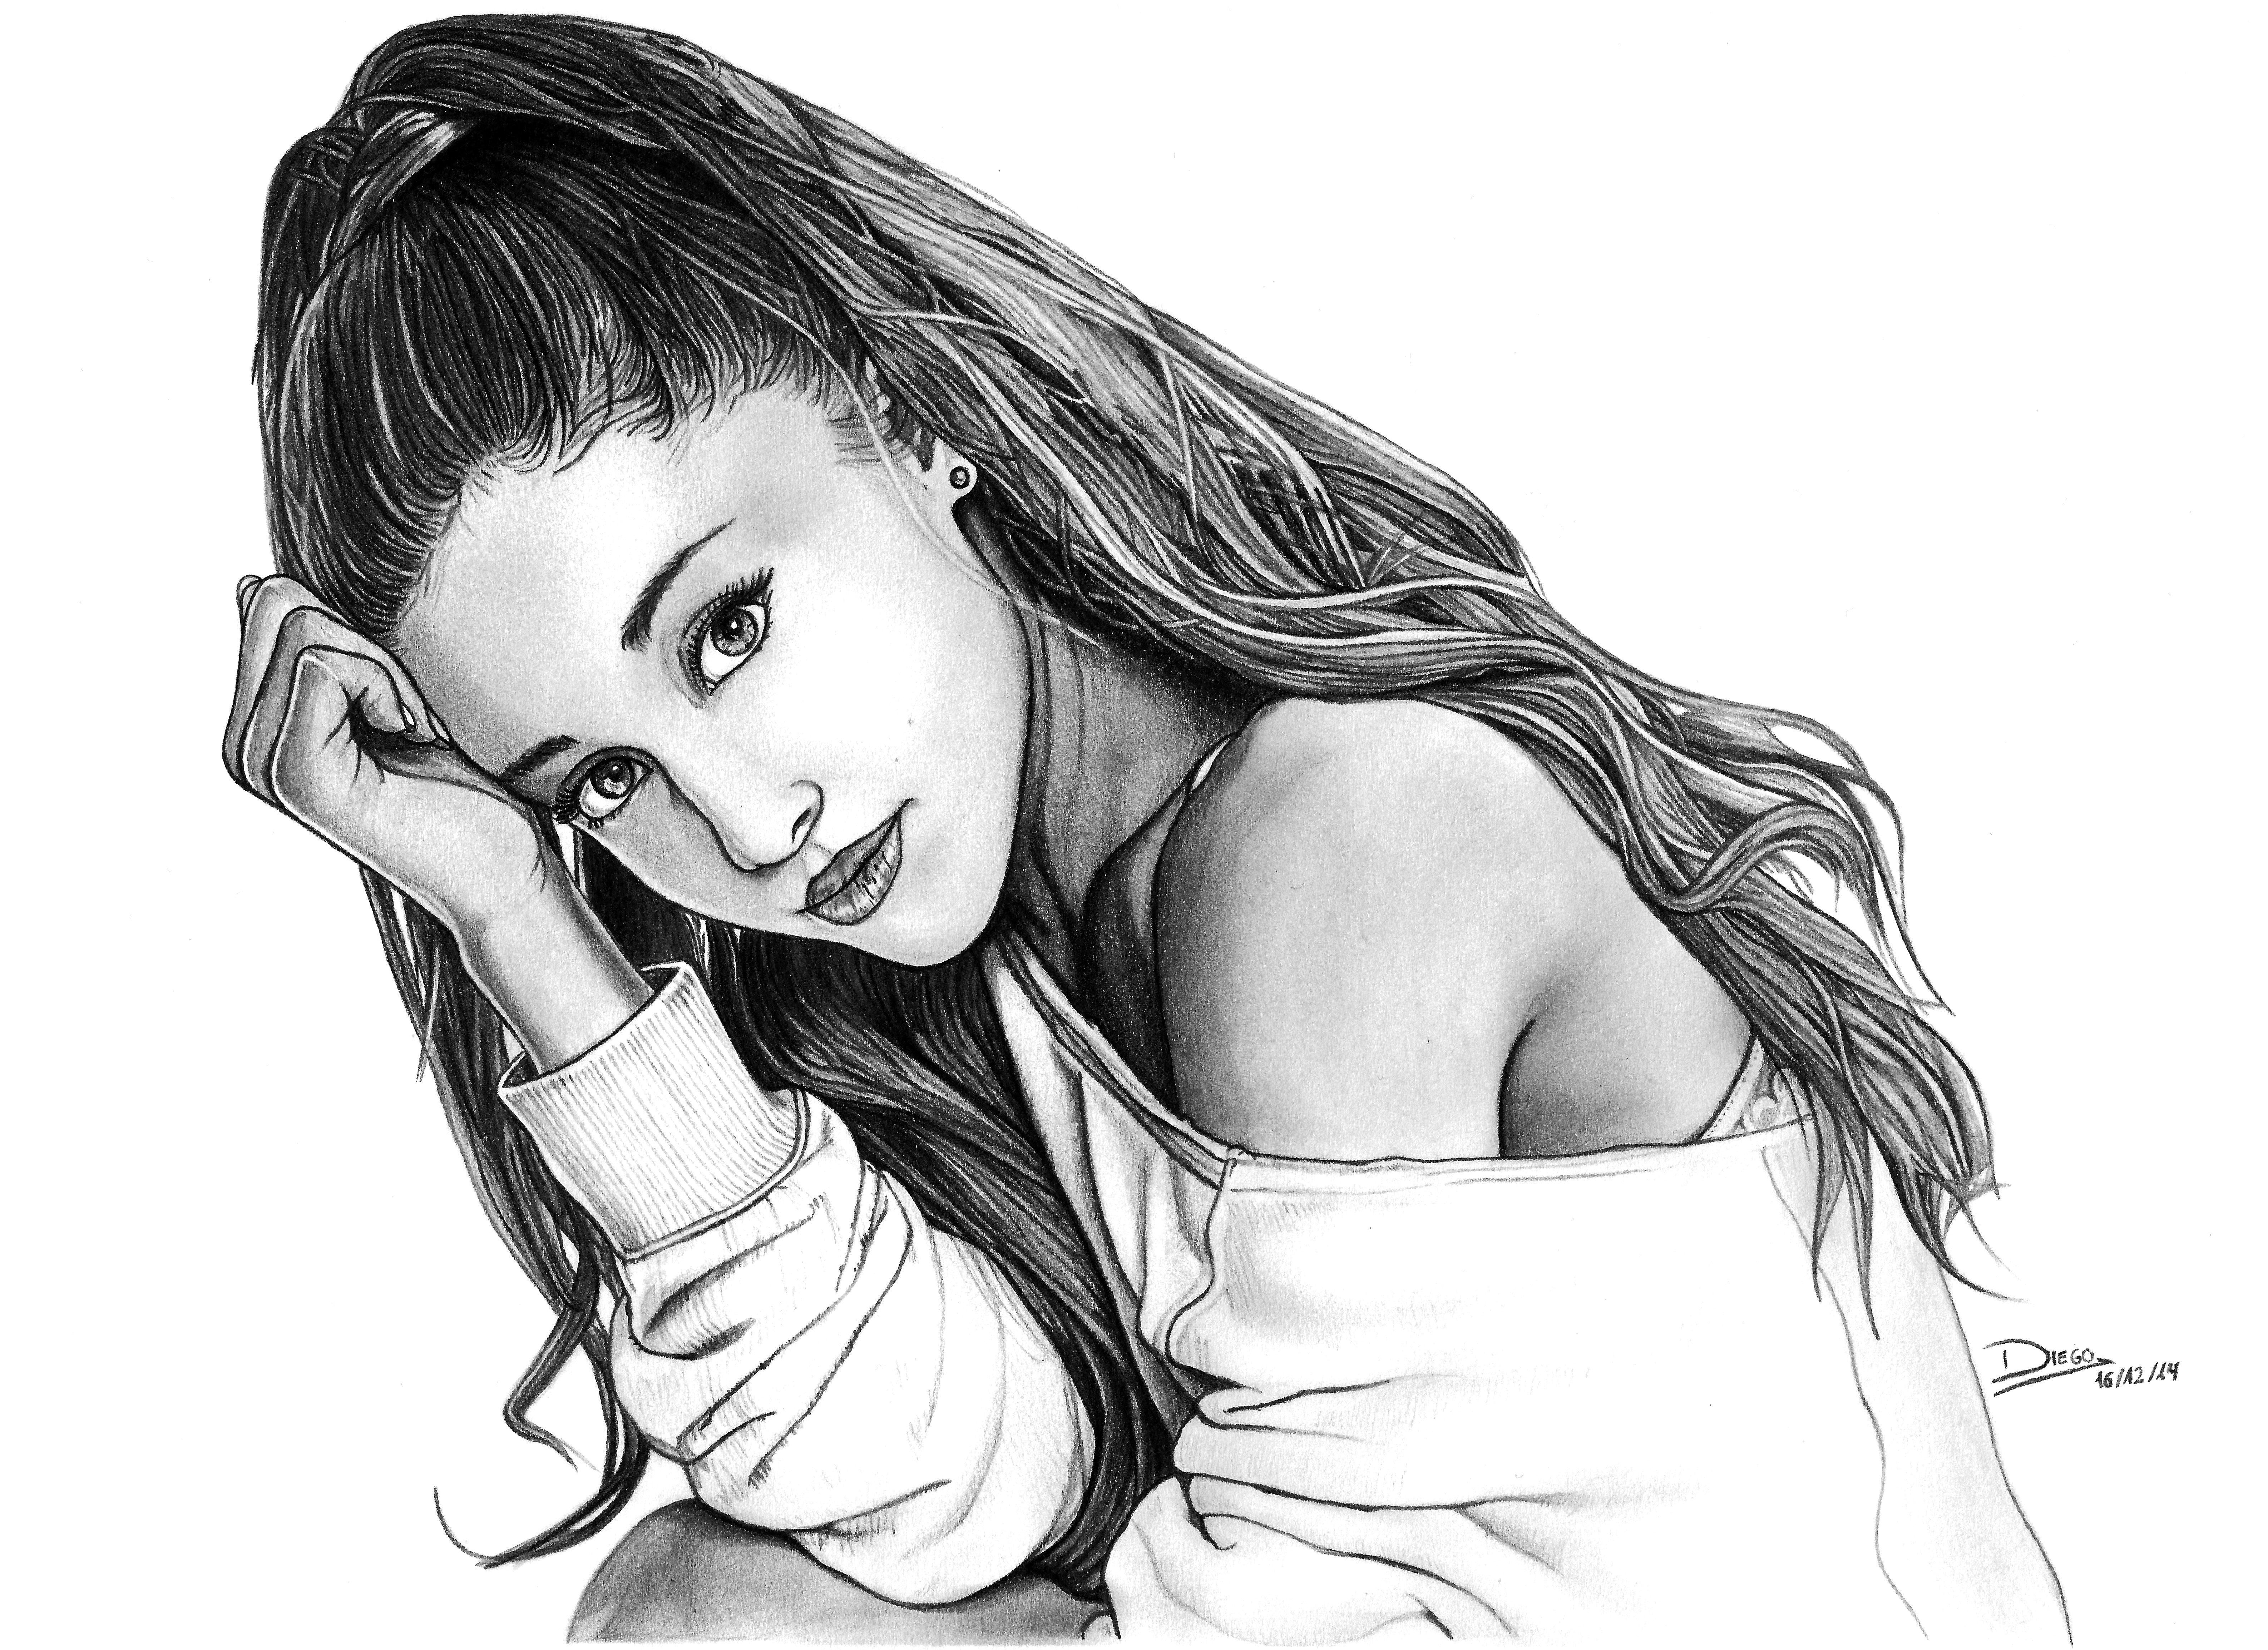 Ariana grande yours truly 3 by jardc87 on deviantart